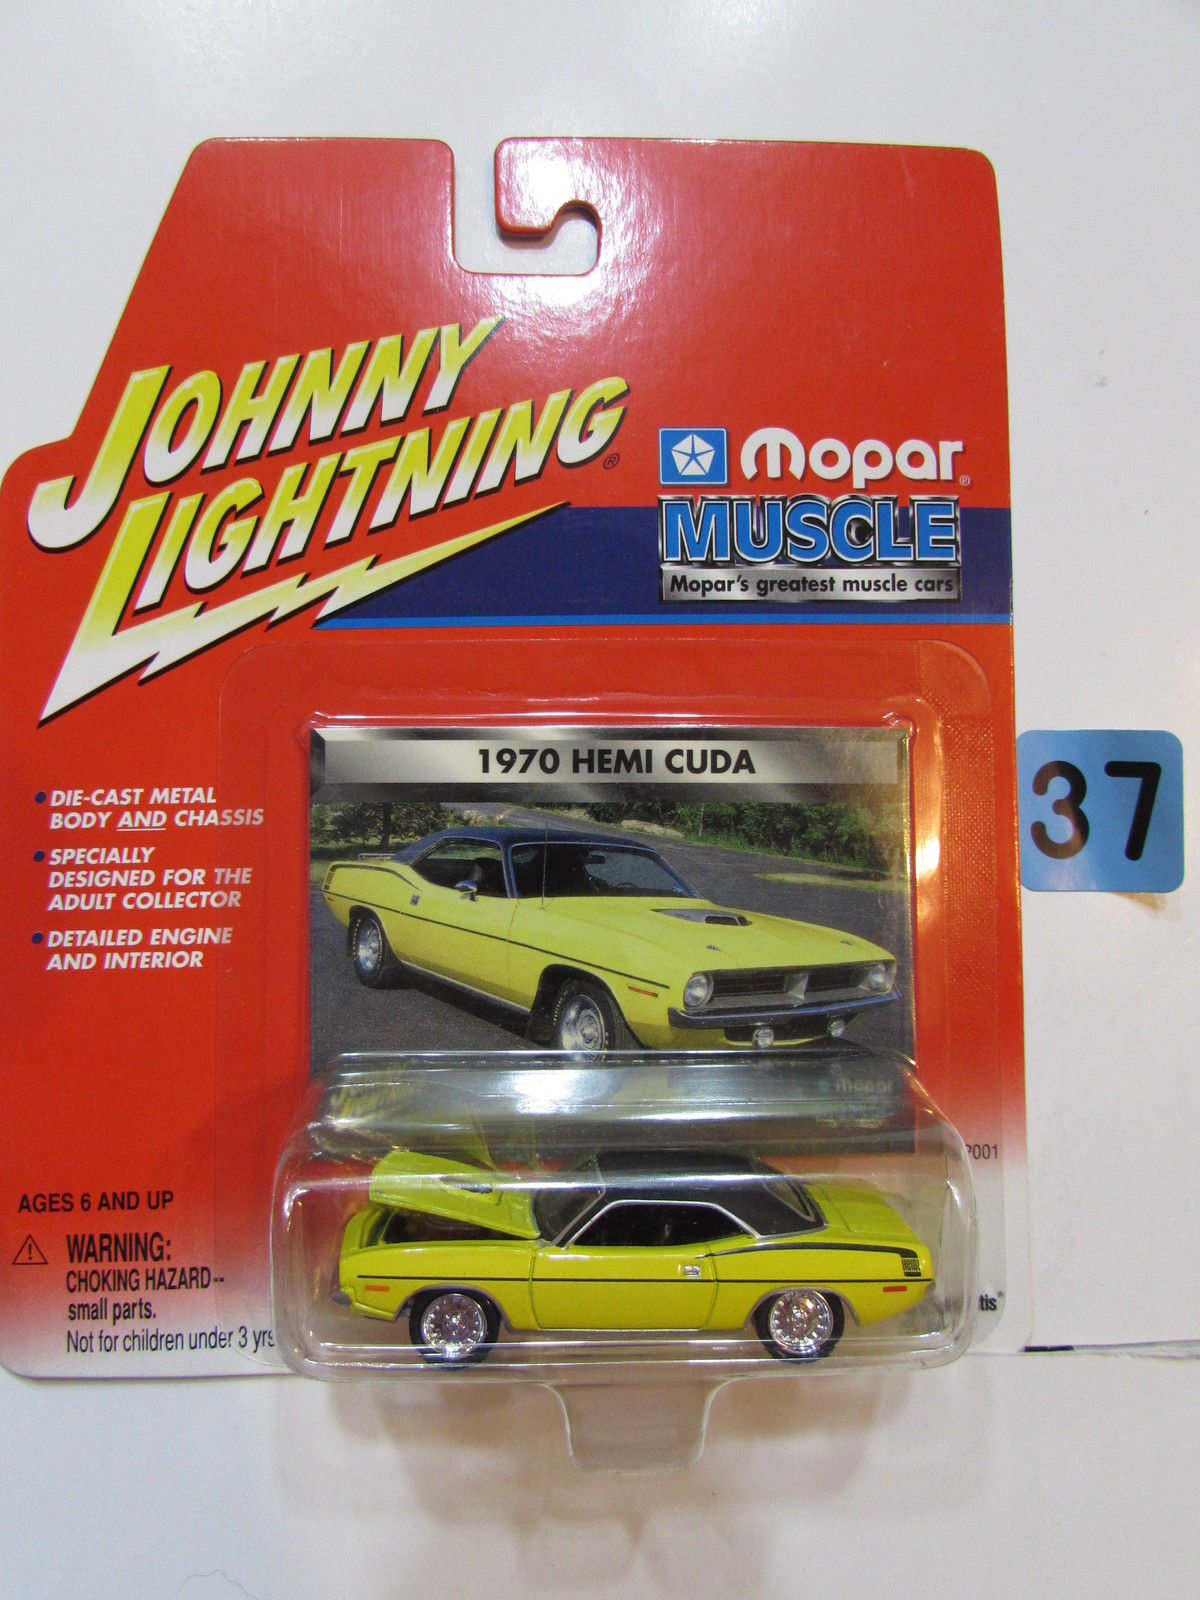 JOHNNY LIGHTNING MOPAR MUSCLE 1970 HEMI CUDA